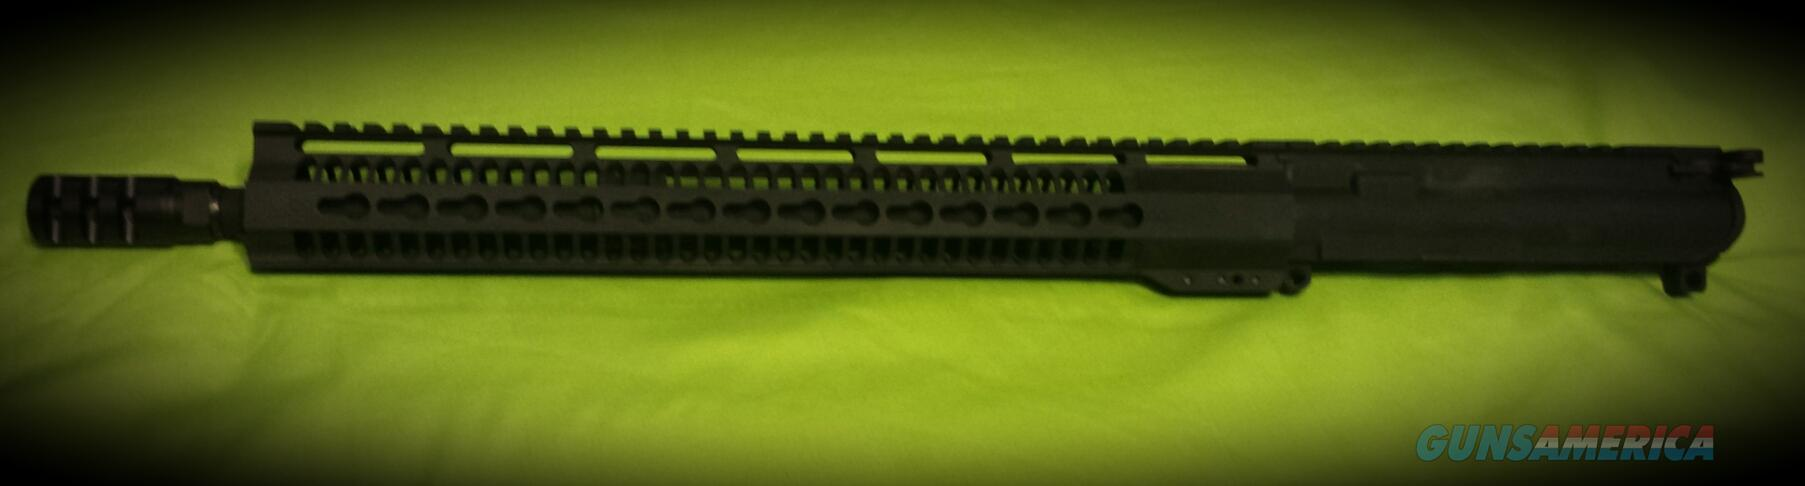 "AA TACTICAL COMPLETE UPPER 16"" 300 BLK FREE FLOAT 1:8  Non-Guns > Gun Parts > M16-AR15 > Upper Only"